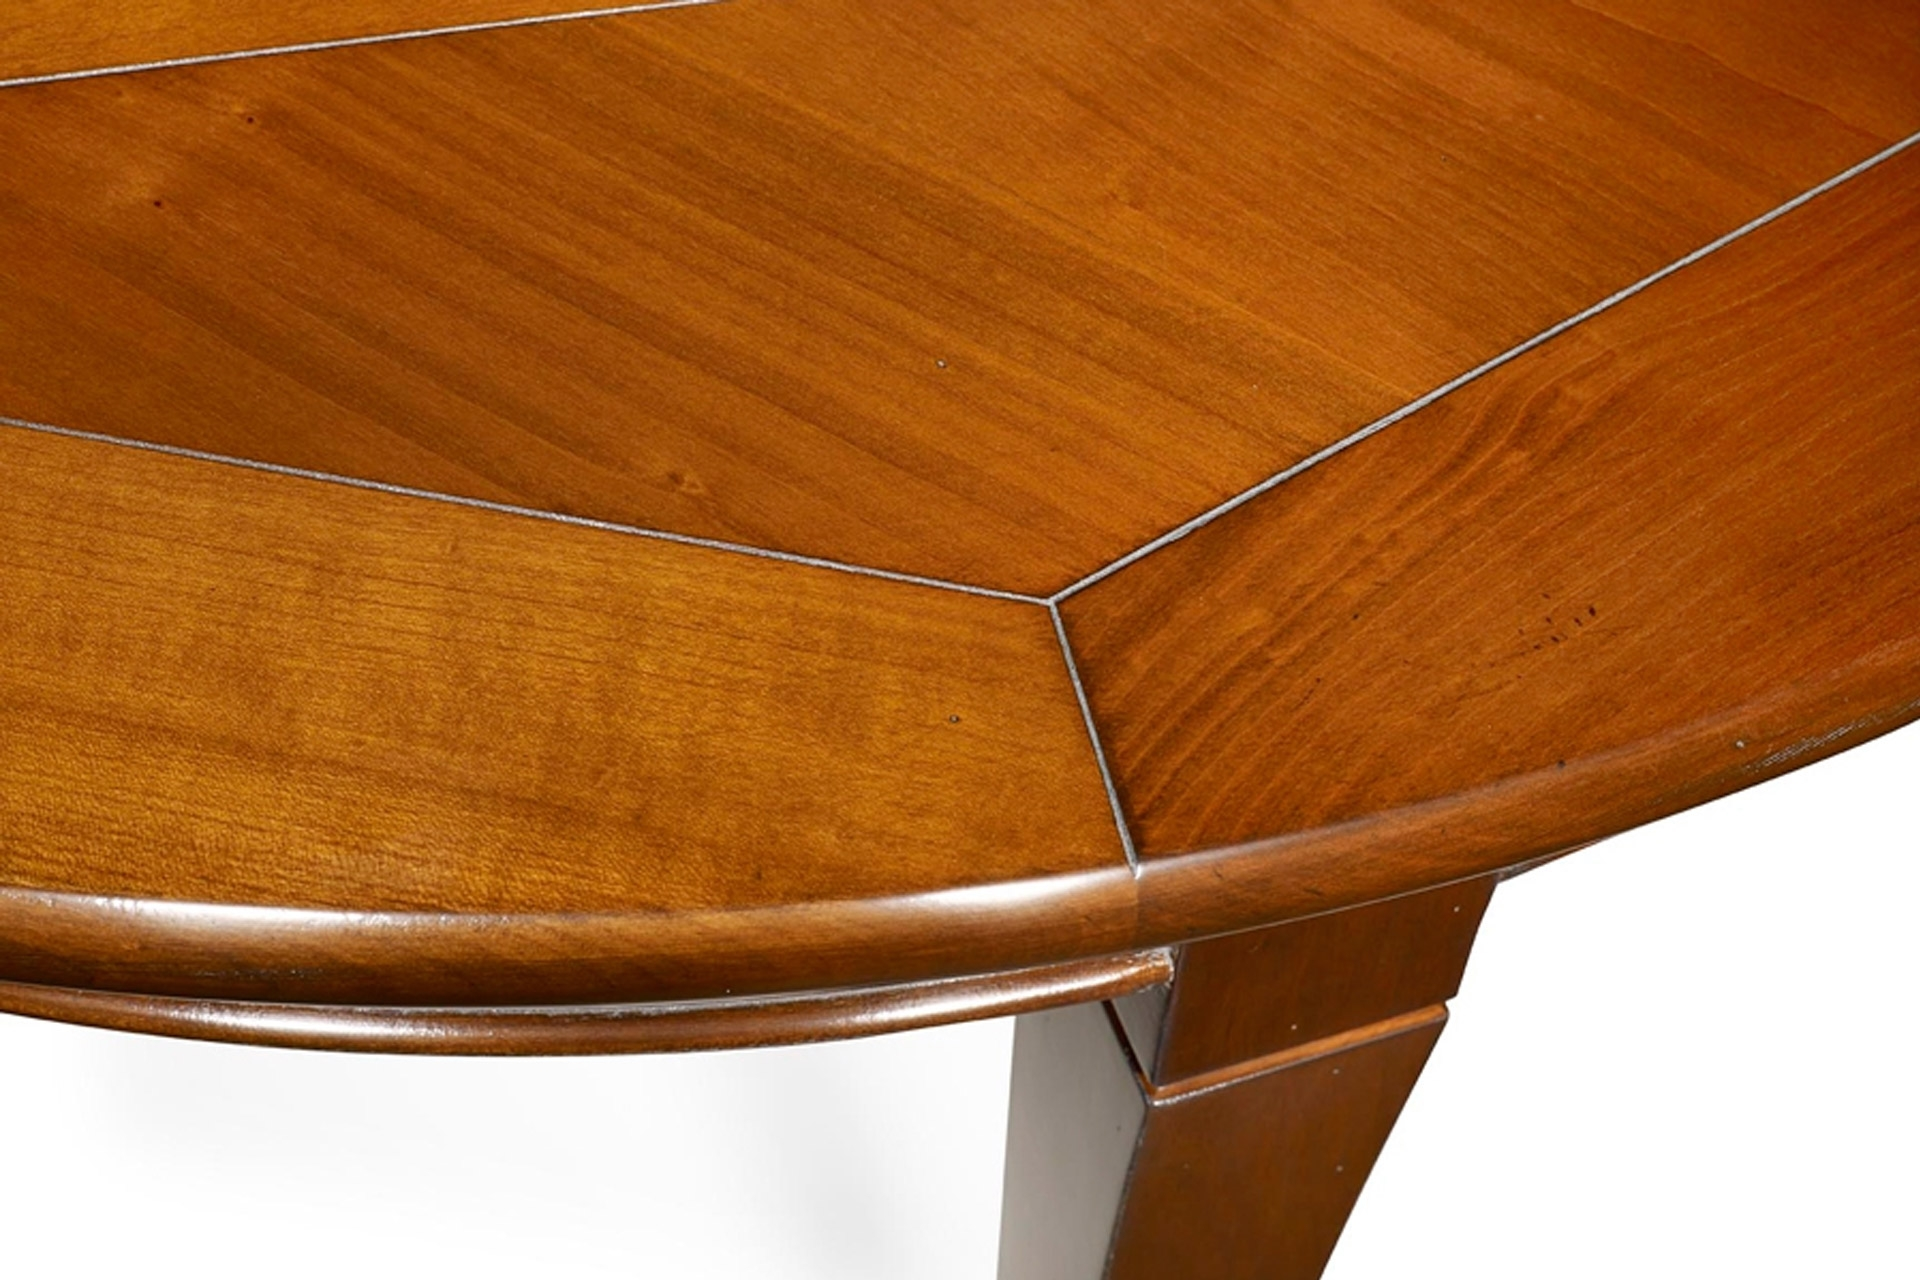 Neagle French Style Dining Tables Dining Tables